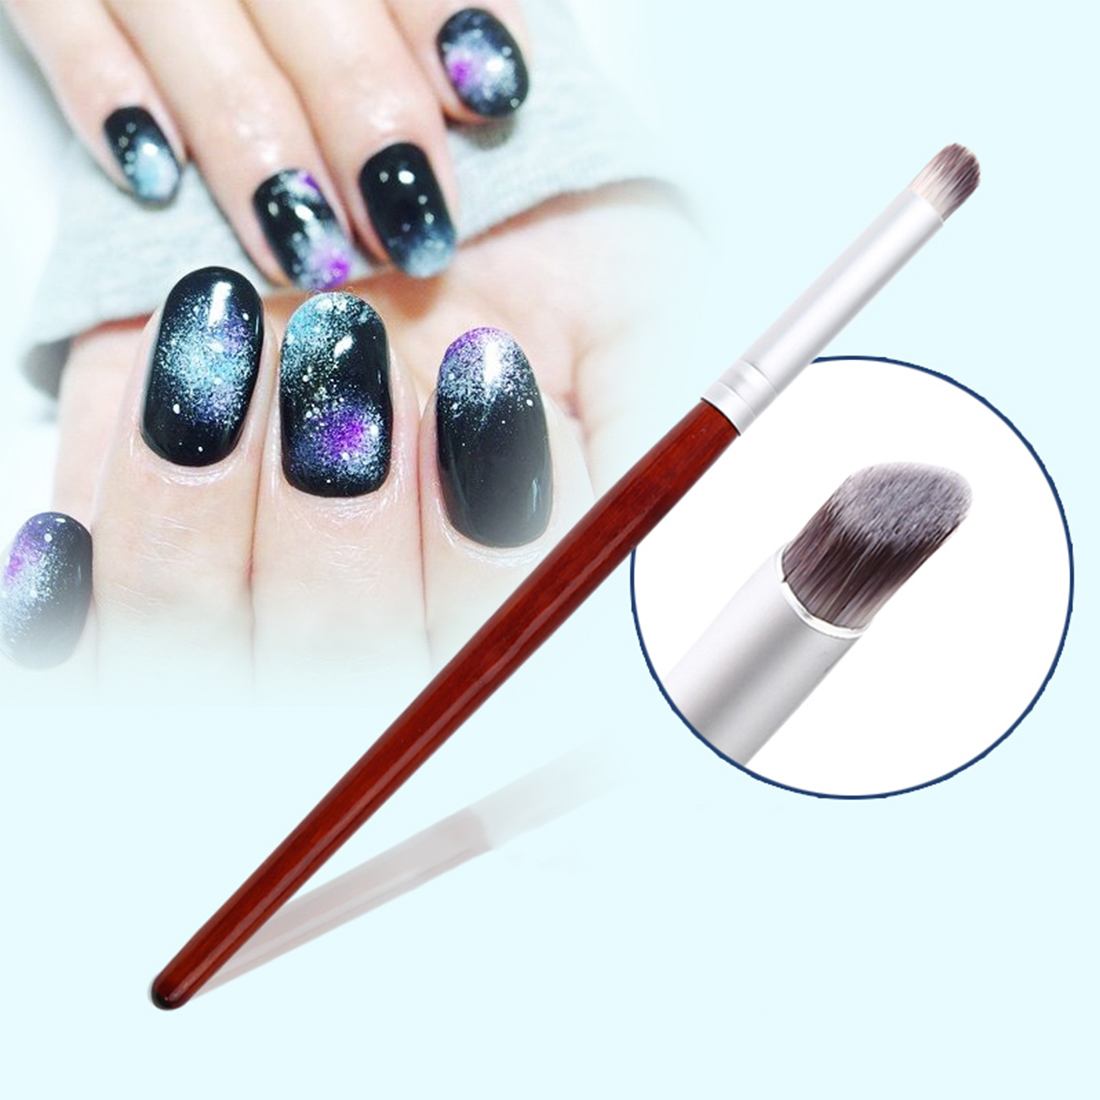 New Manicure Painting Shanding Pen DIY Salon Drawing Tool Dark Red Wood Handle Nylon Hair Ombre Gradient Nail Art Gel Brush